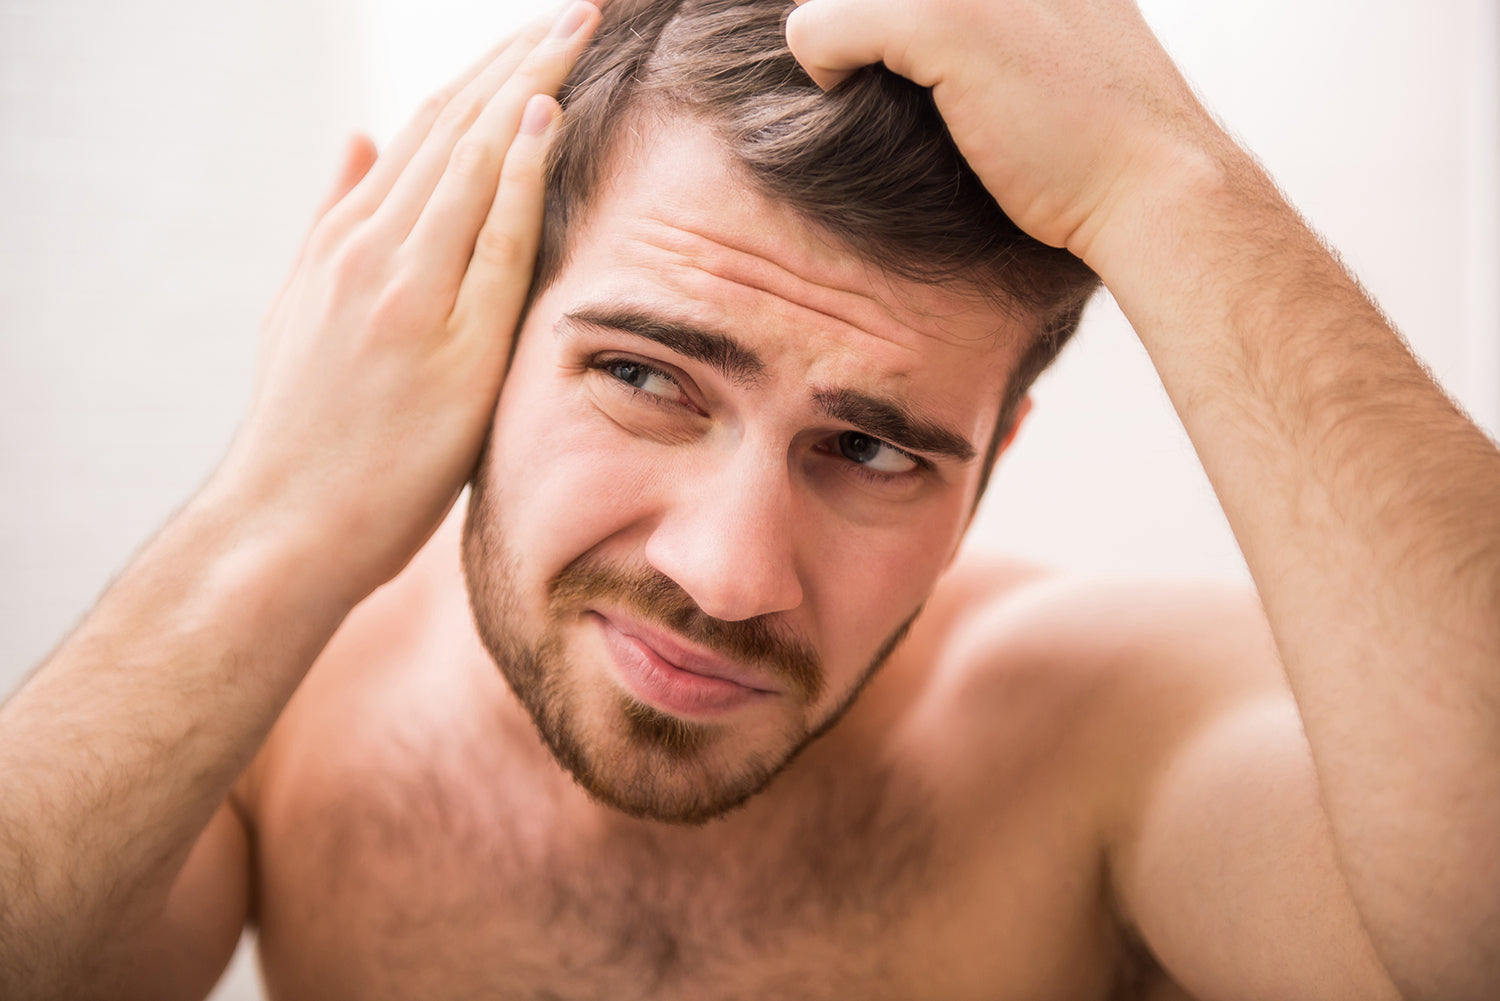 dht causes hair loss